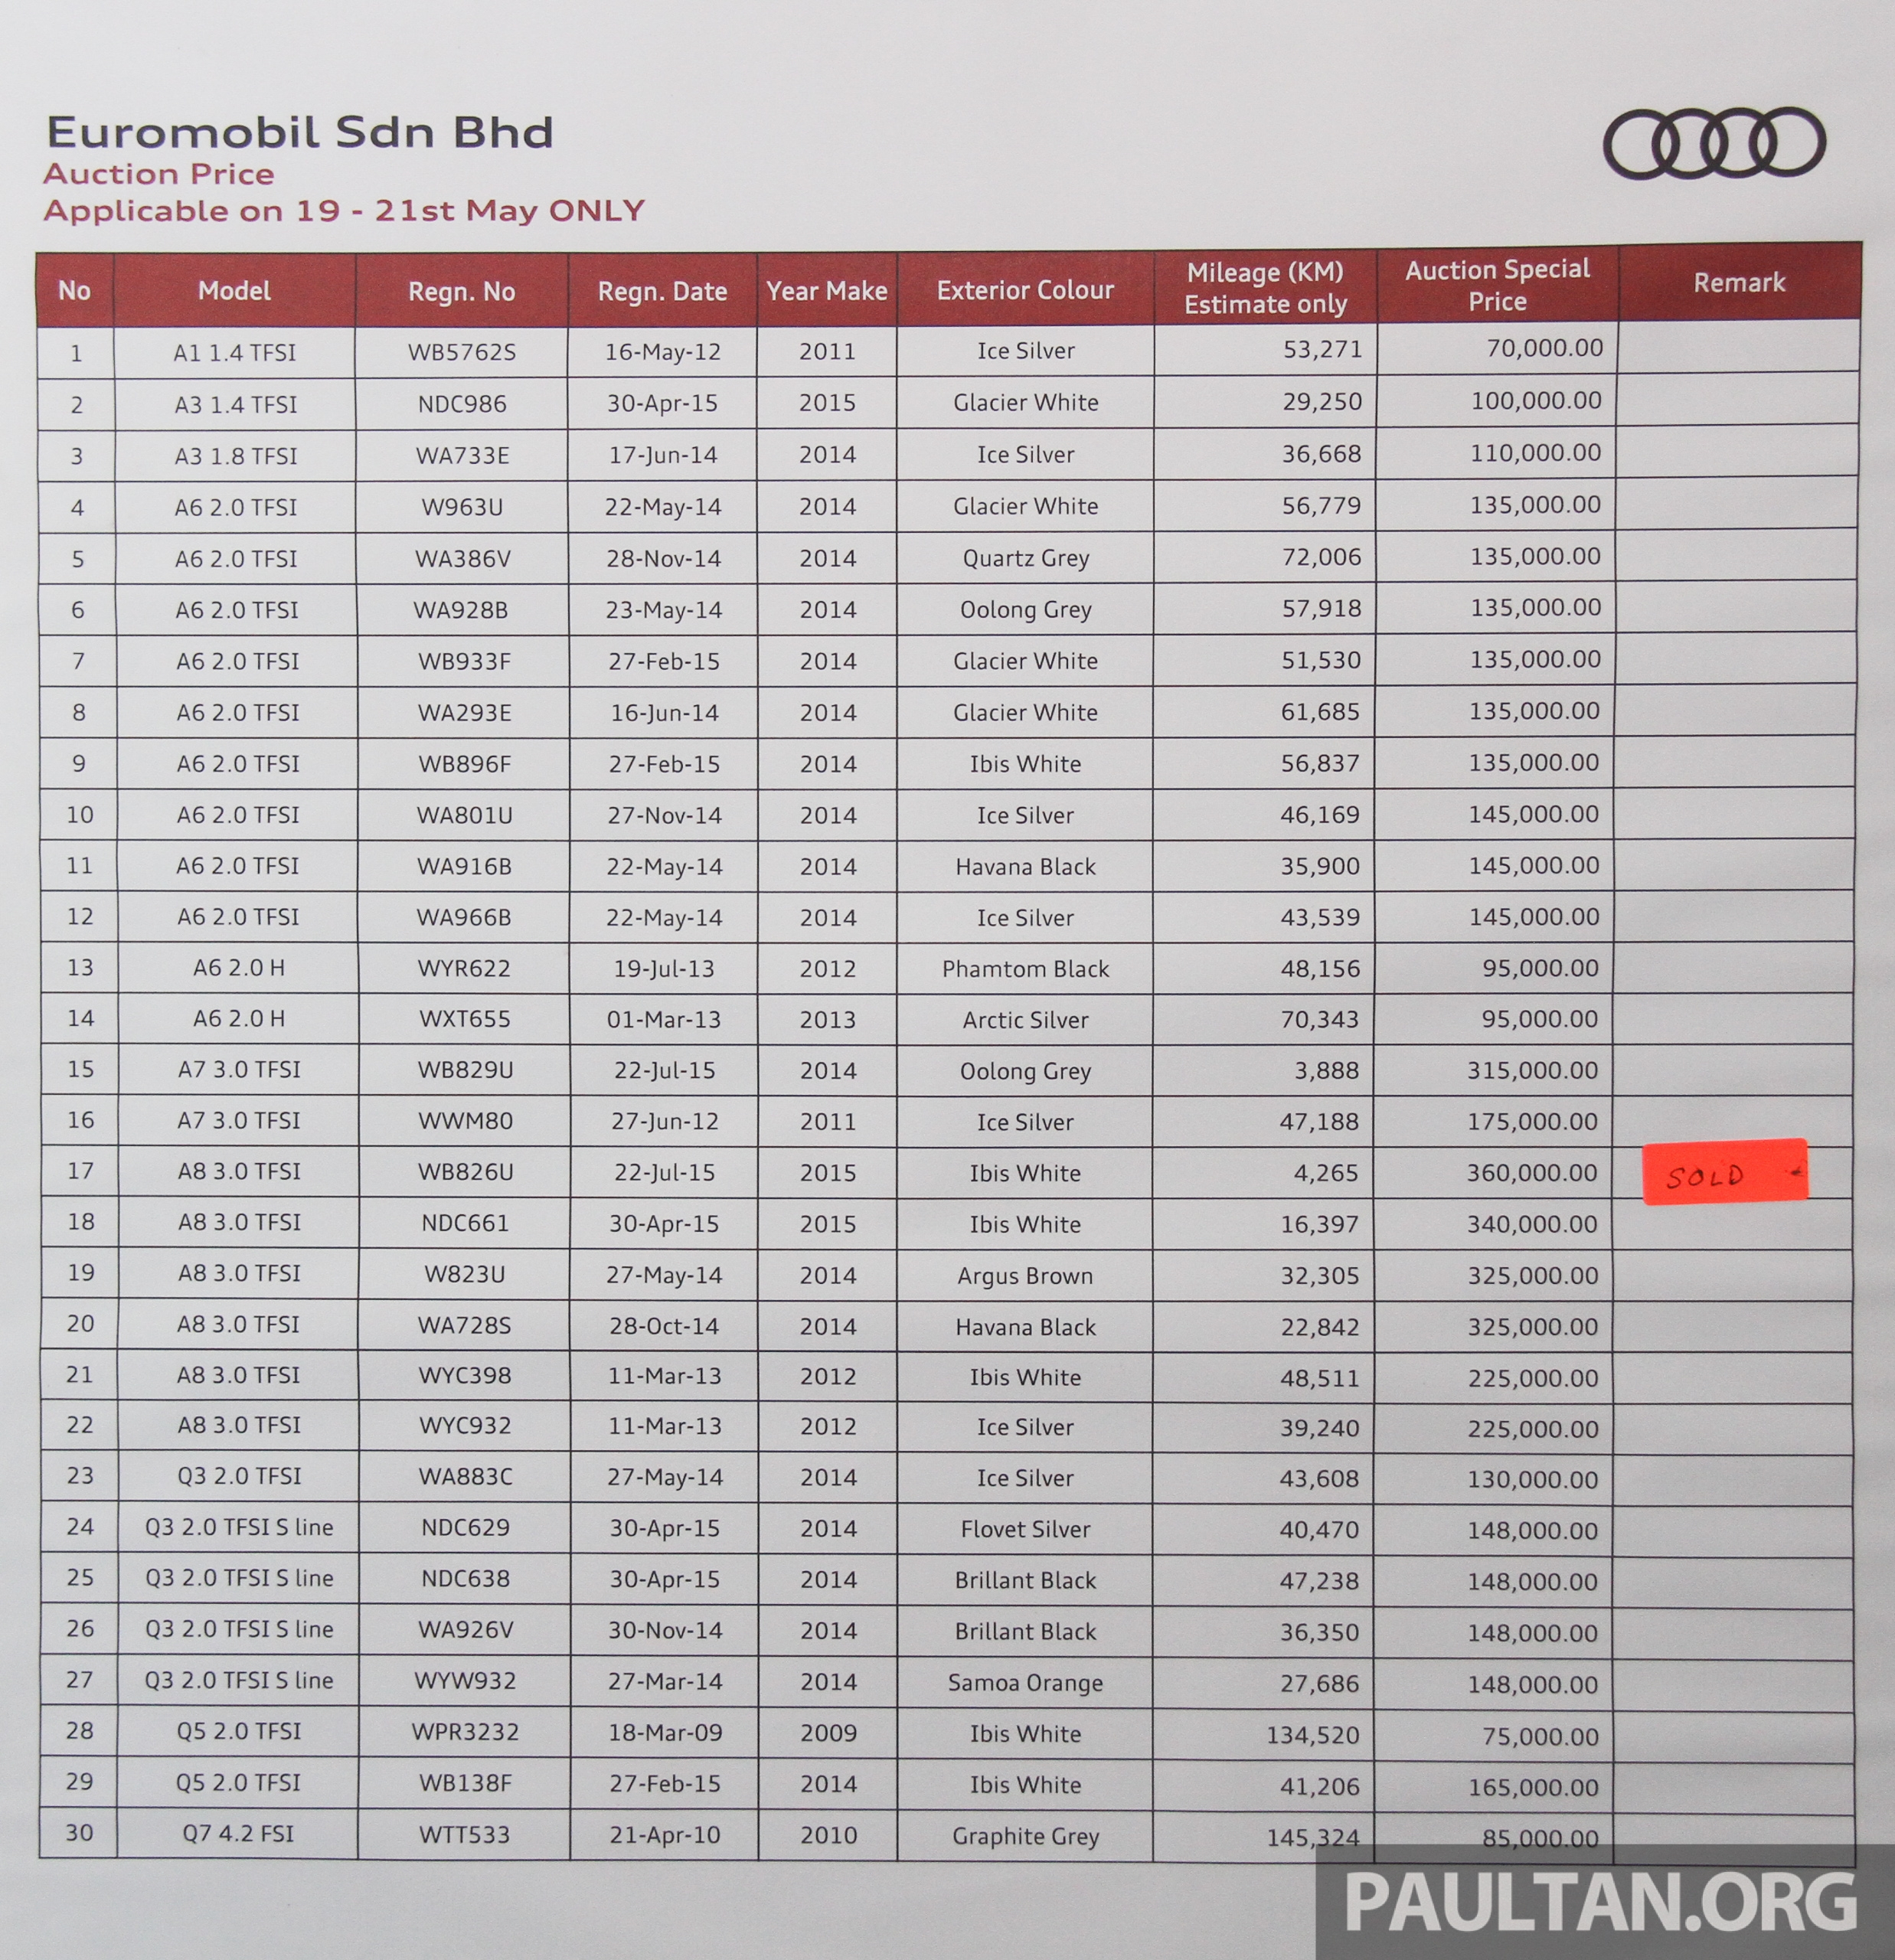 Audi Raya Deals A1 To Q7 Prices Start From Rm70k Image